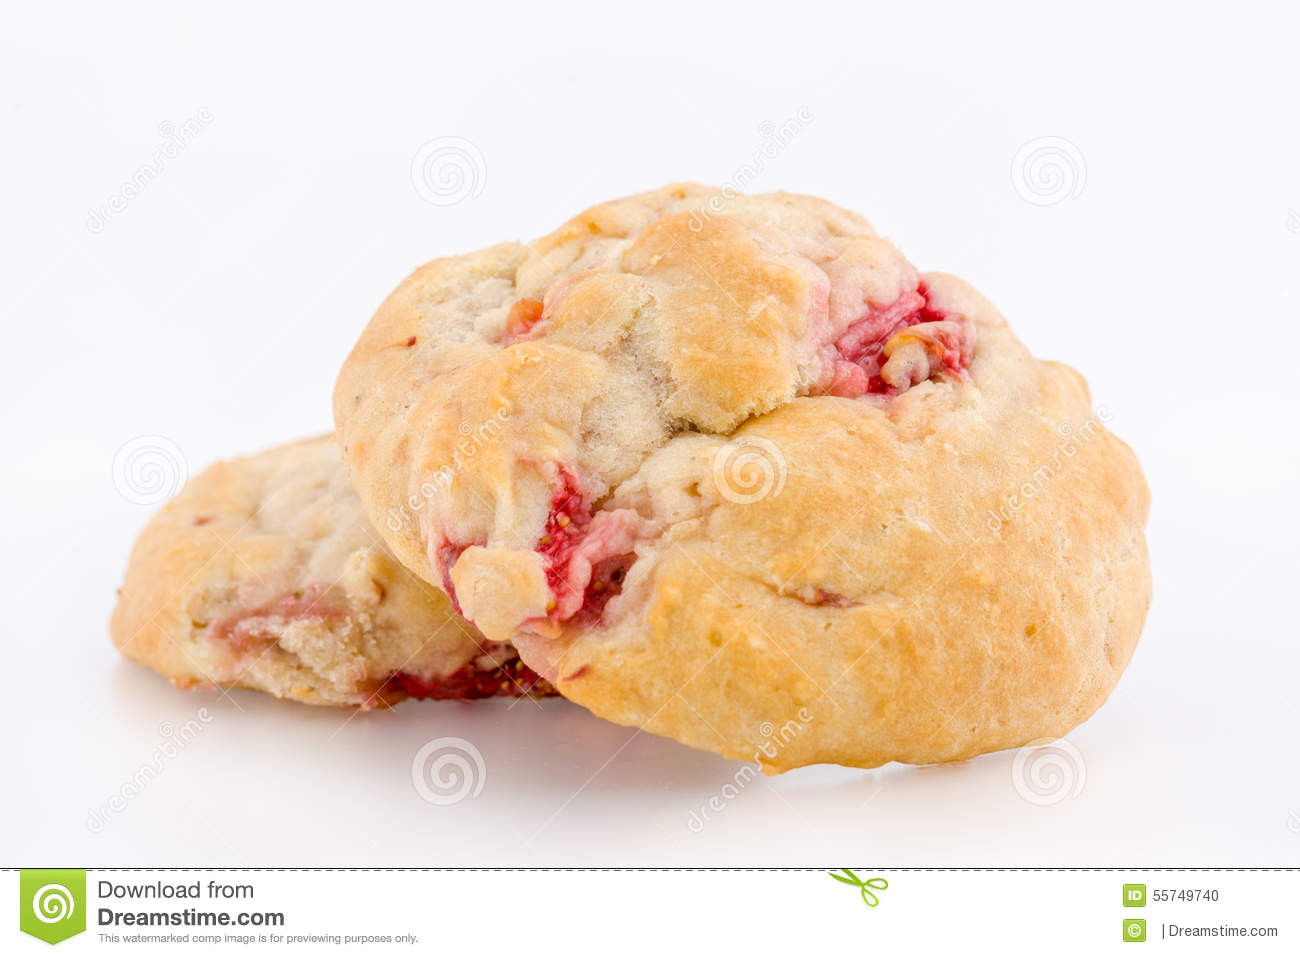 Fresh strawberry scone straight from the bakery.